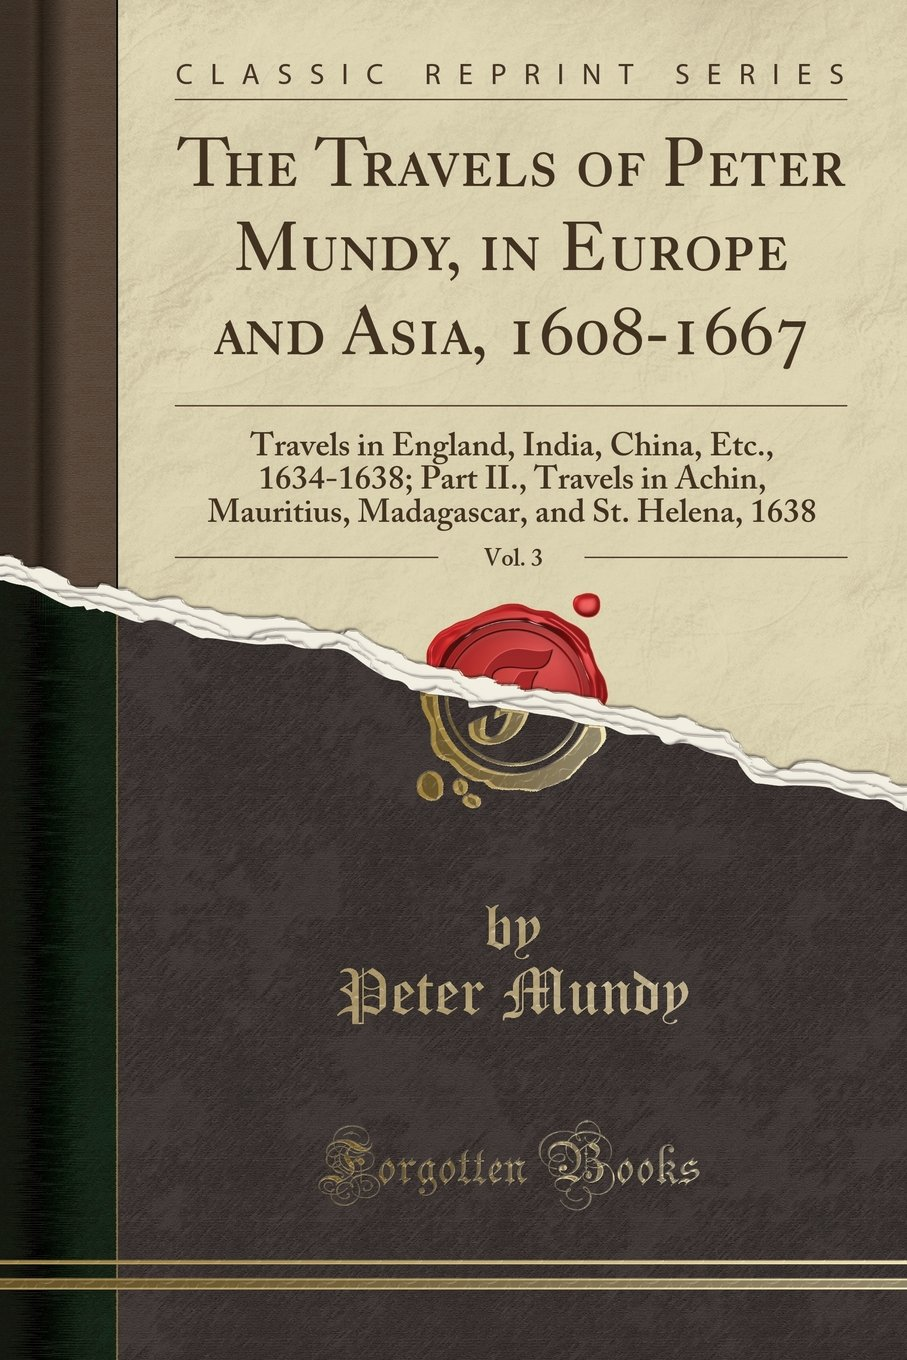 The Travels of Peter Mundy, in Europe and Asia, 1608-1667, Vol. 3: Travels in England, India, China, Etc., 1634-1638; Part II., Travels in Achin, ... and St. Helena, 1638 (Classic Reprint) pdf